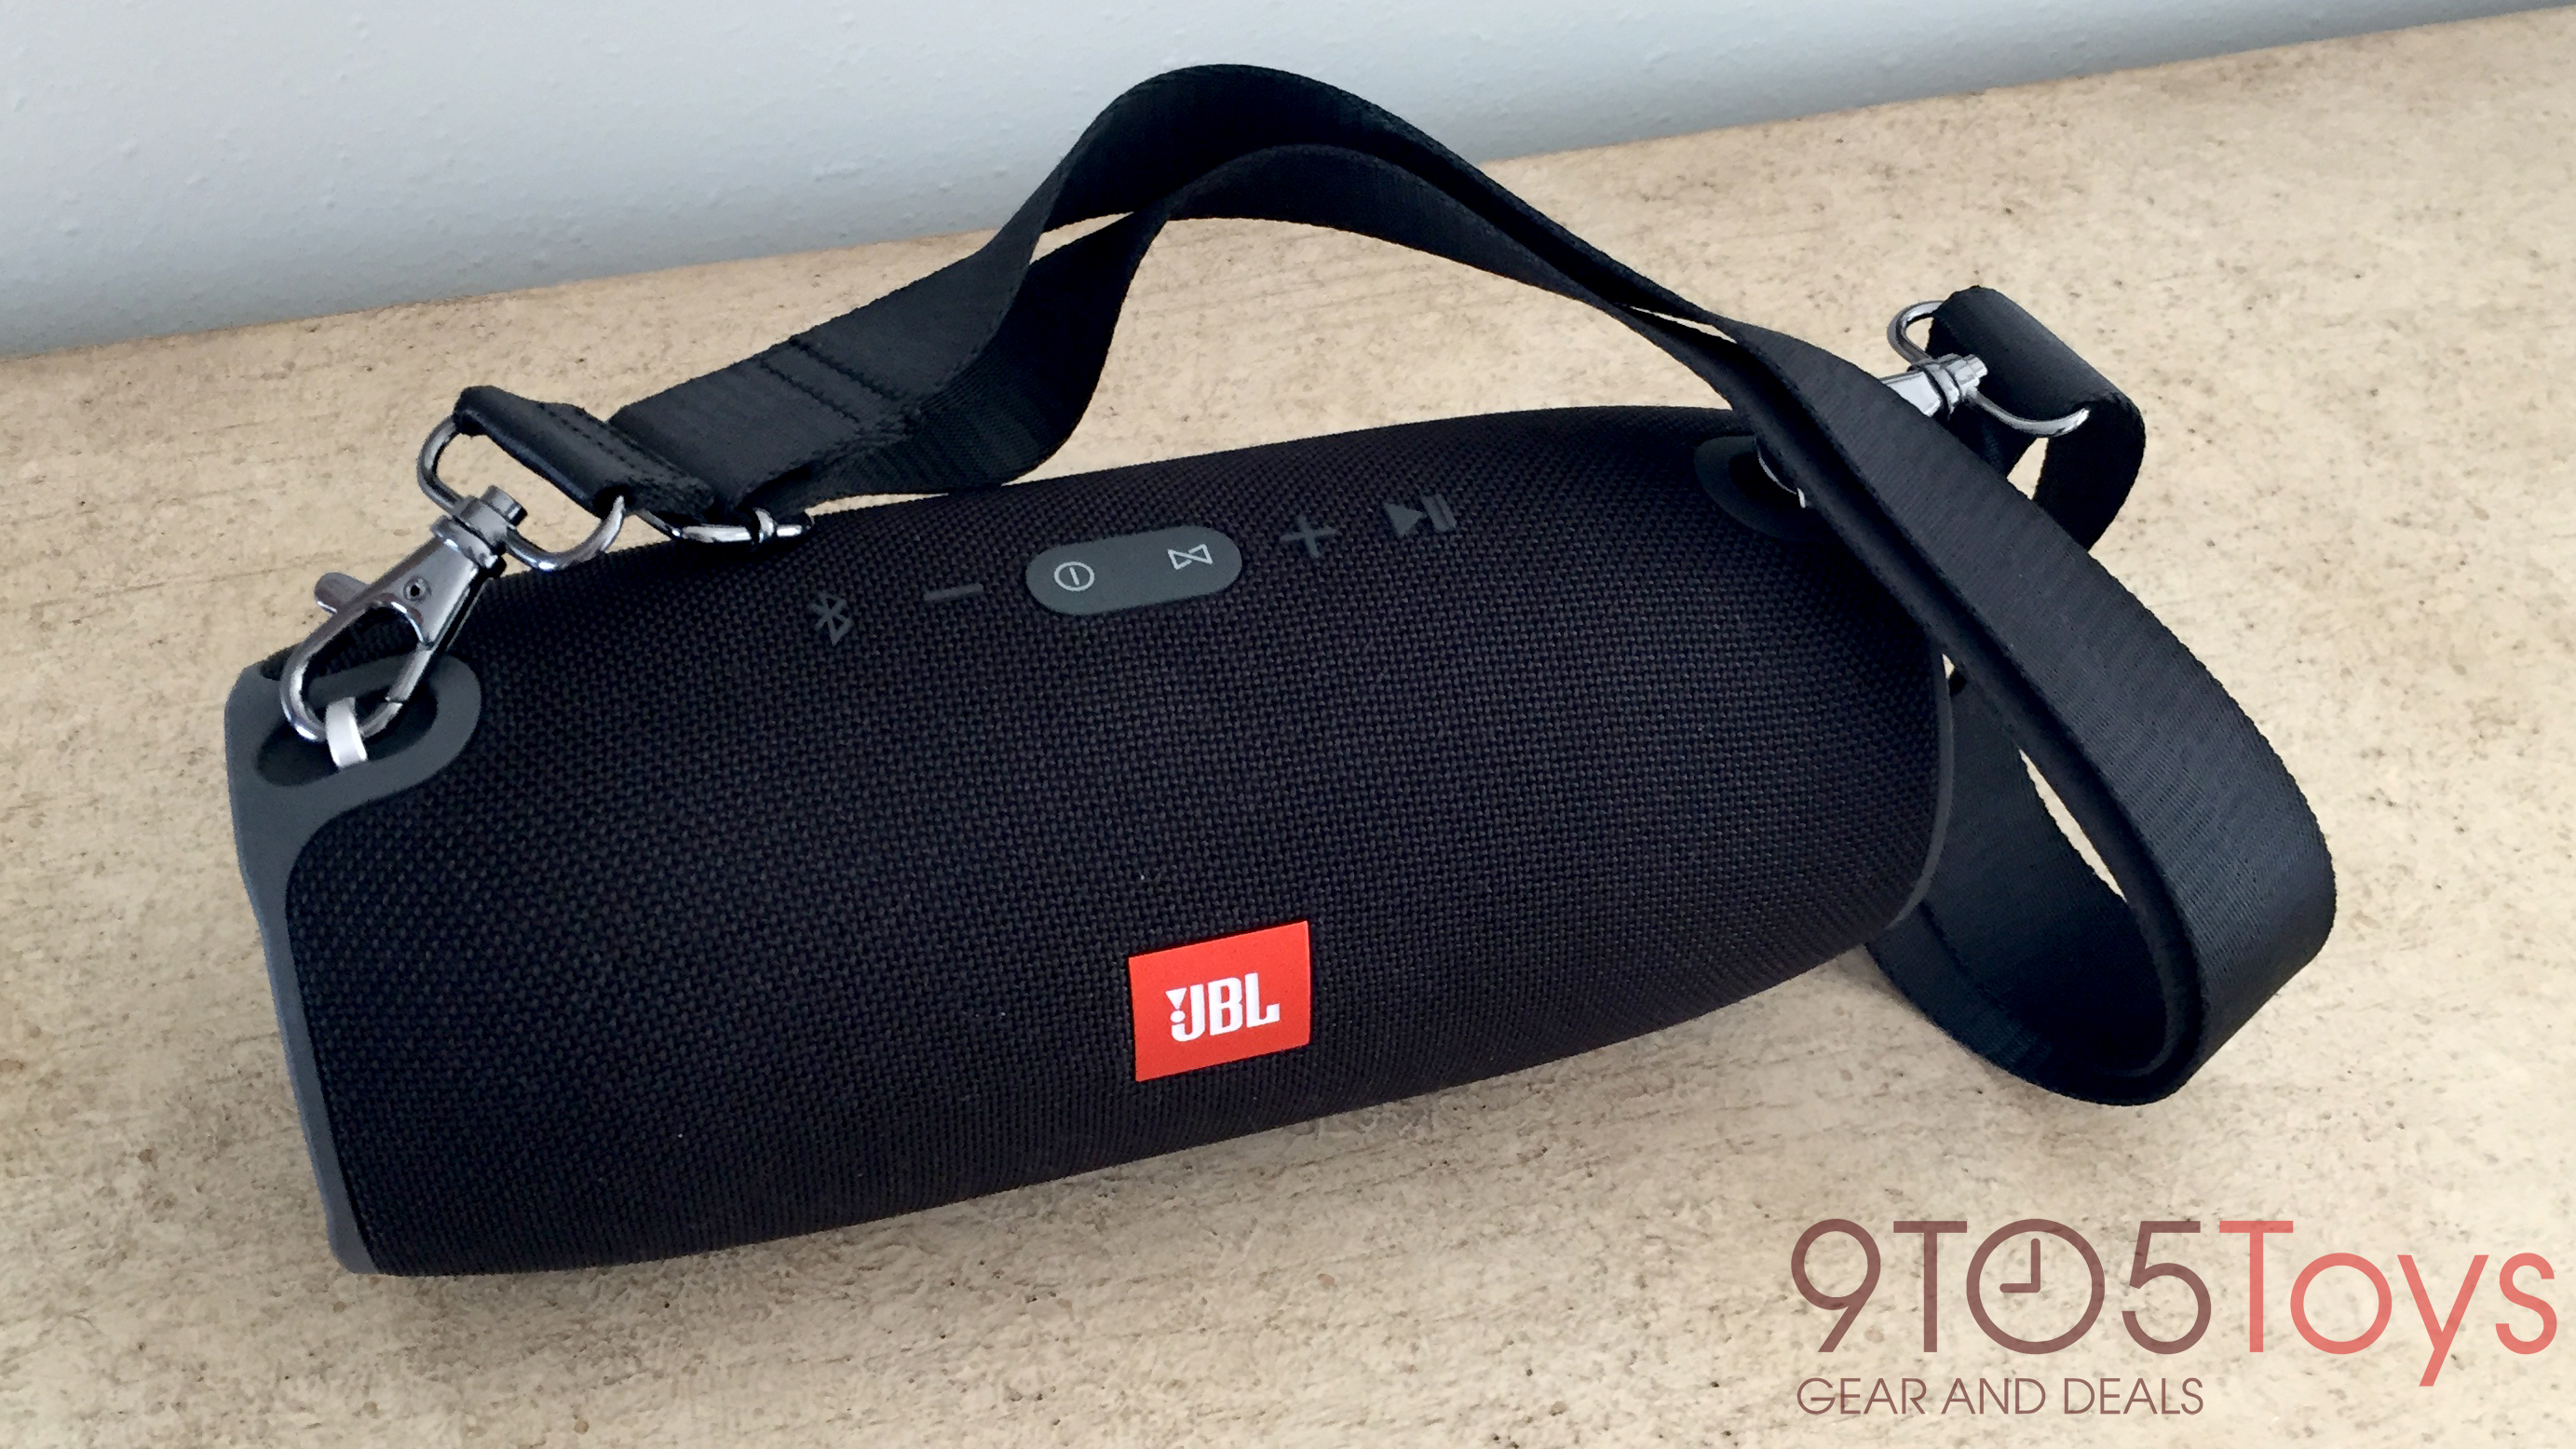 jbl-xtreme-speaker-9to5toys-review